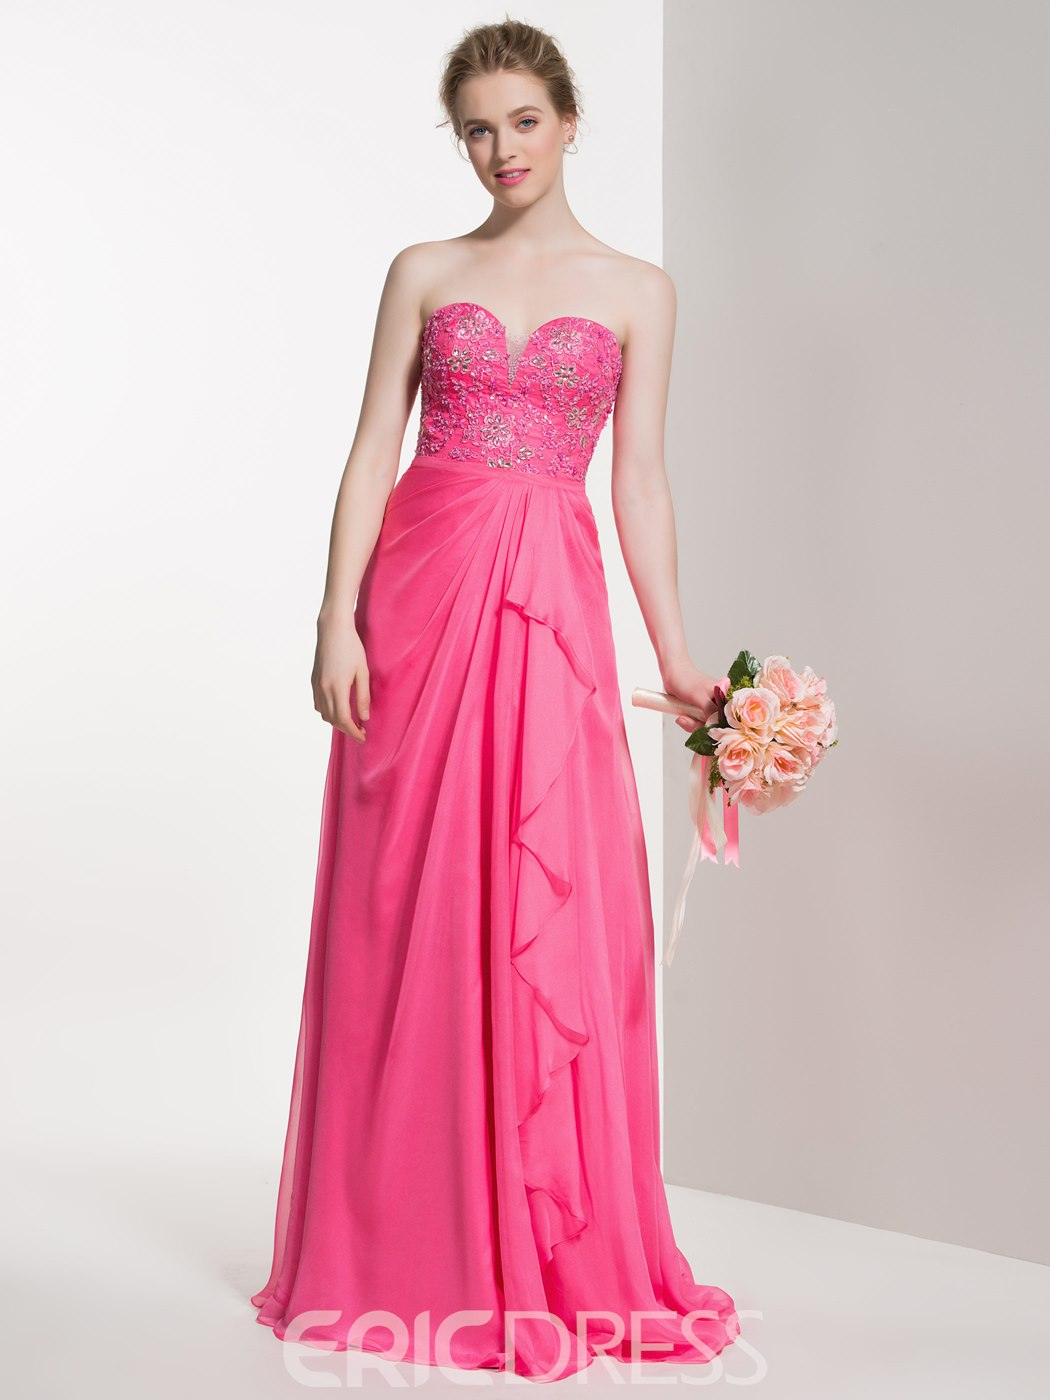 Ericdress Beautiful Beaded Sweetheart A Line Long Bridesmaid Dress